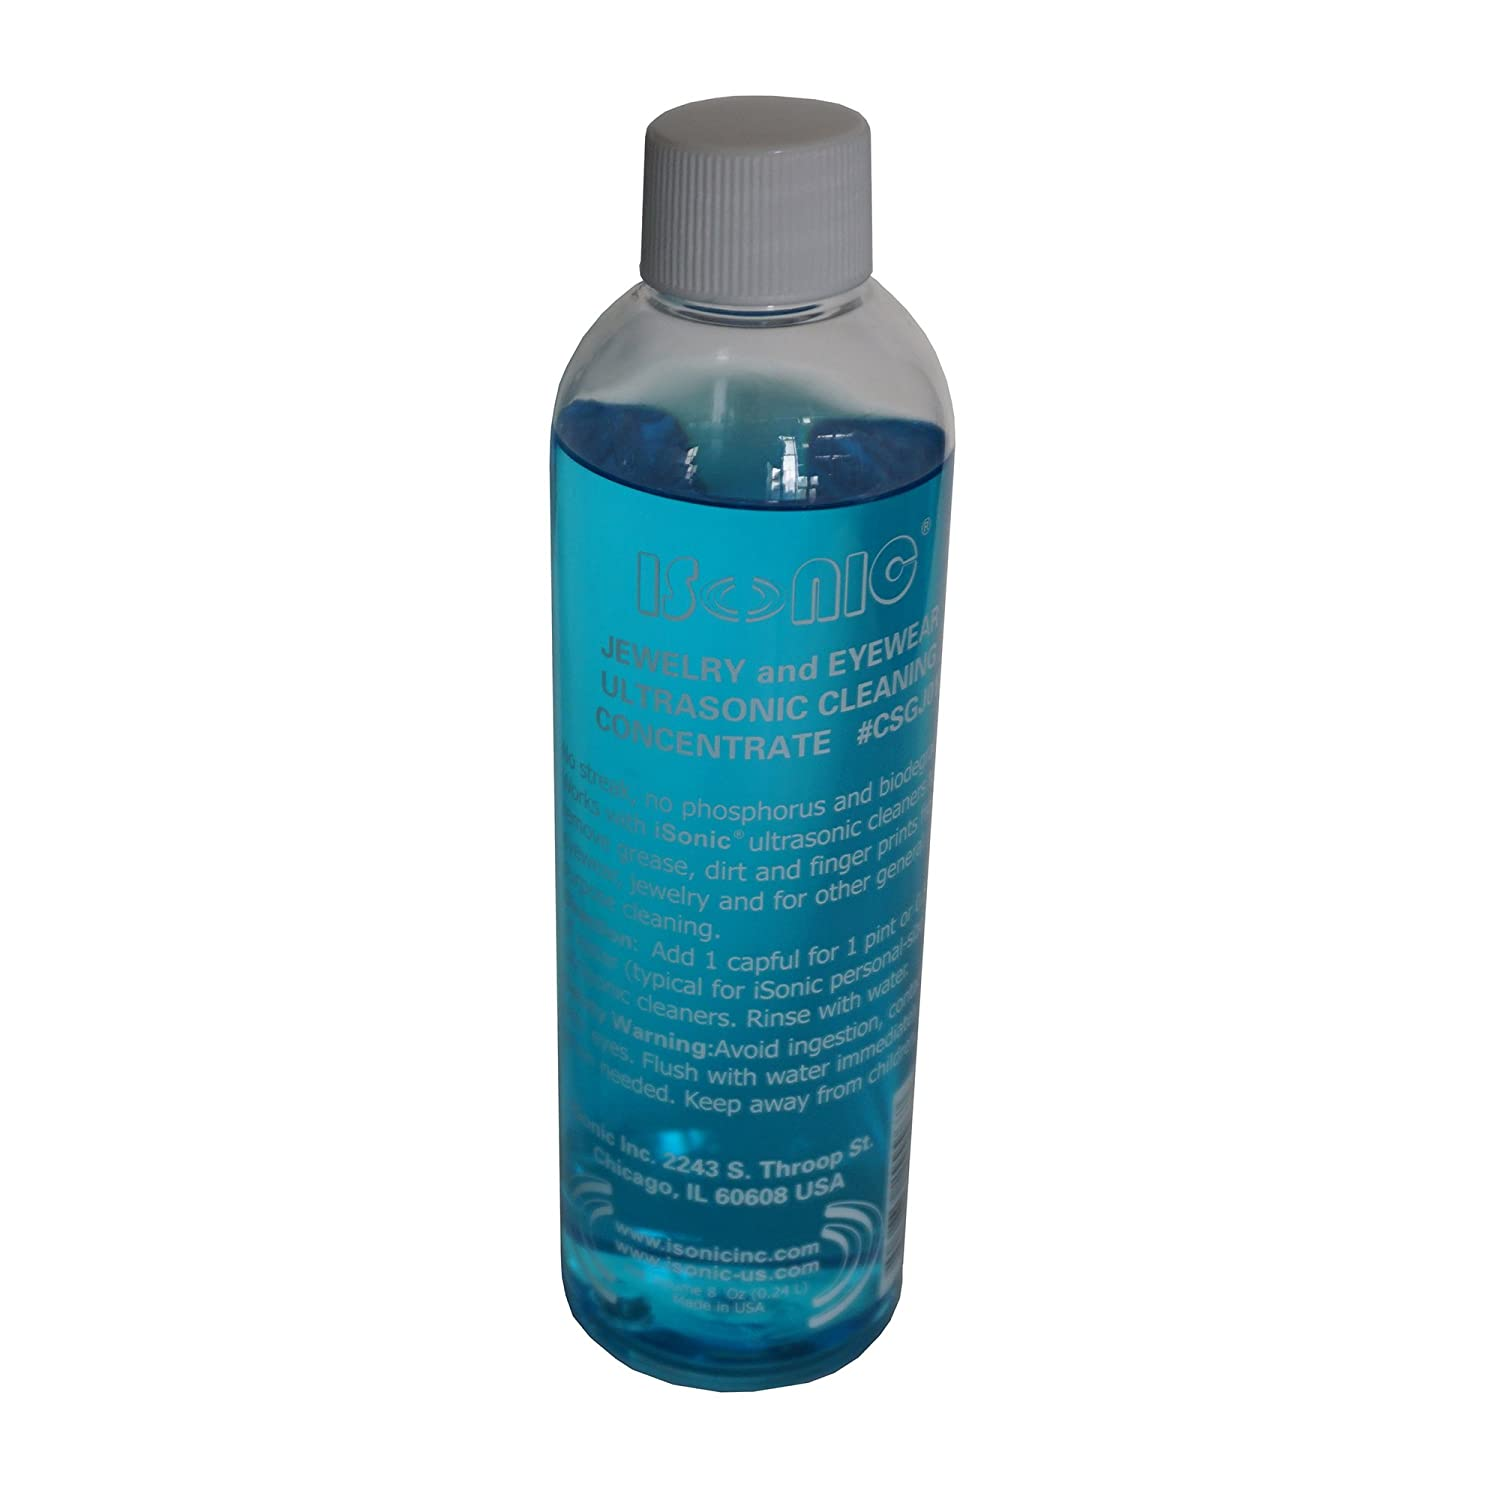 Image result for ISonic CSGJ01-8OZx1 Ultrasonic Jewelry/Eye Wear Cleaning Solution Concentrate: